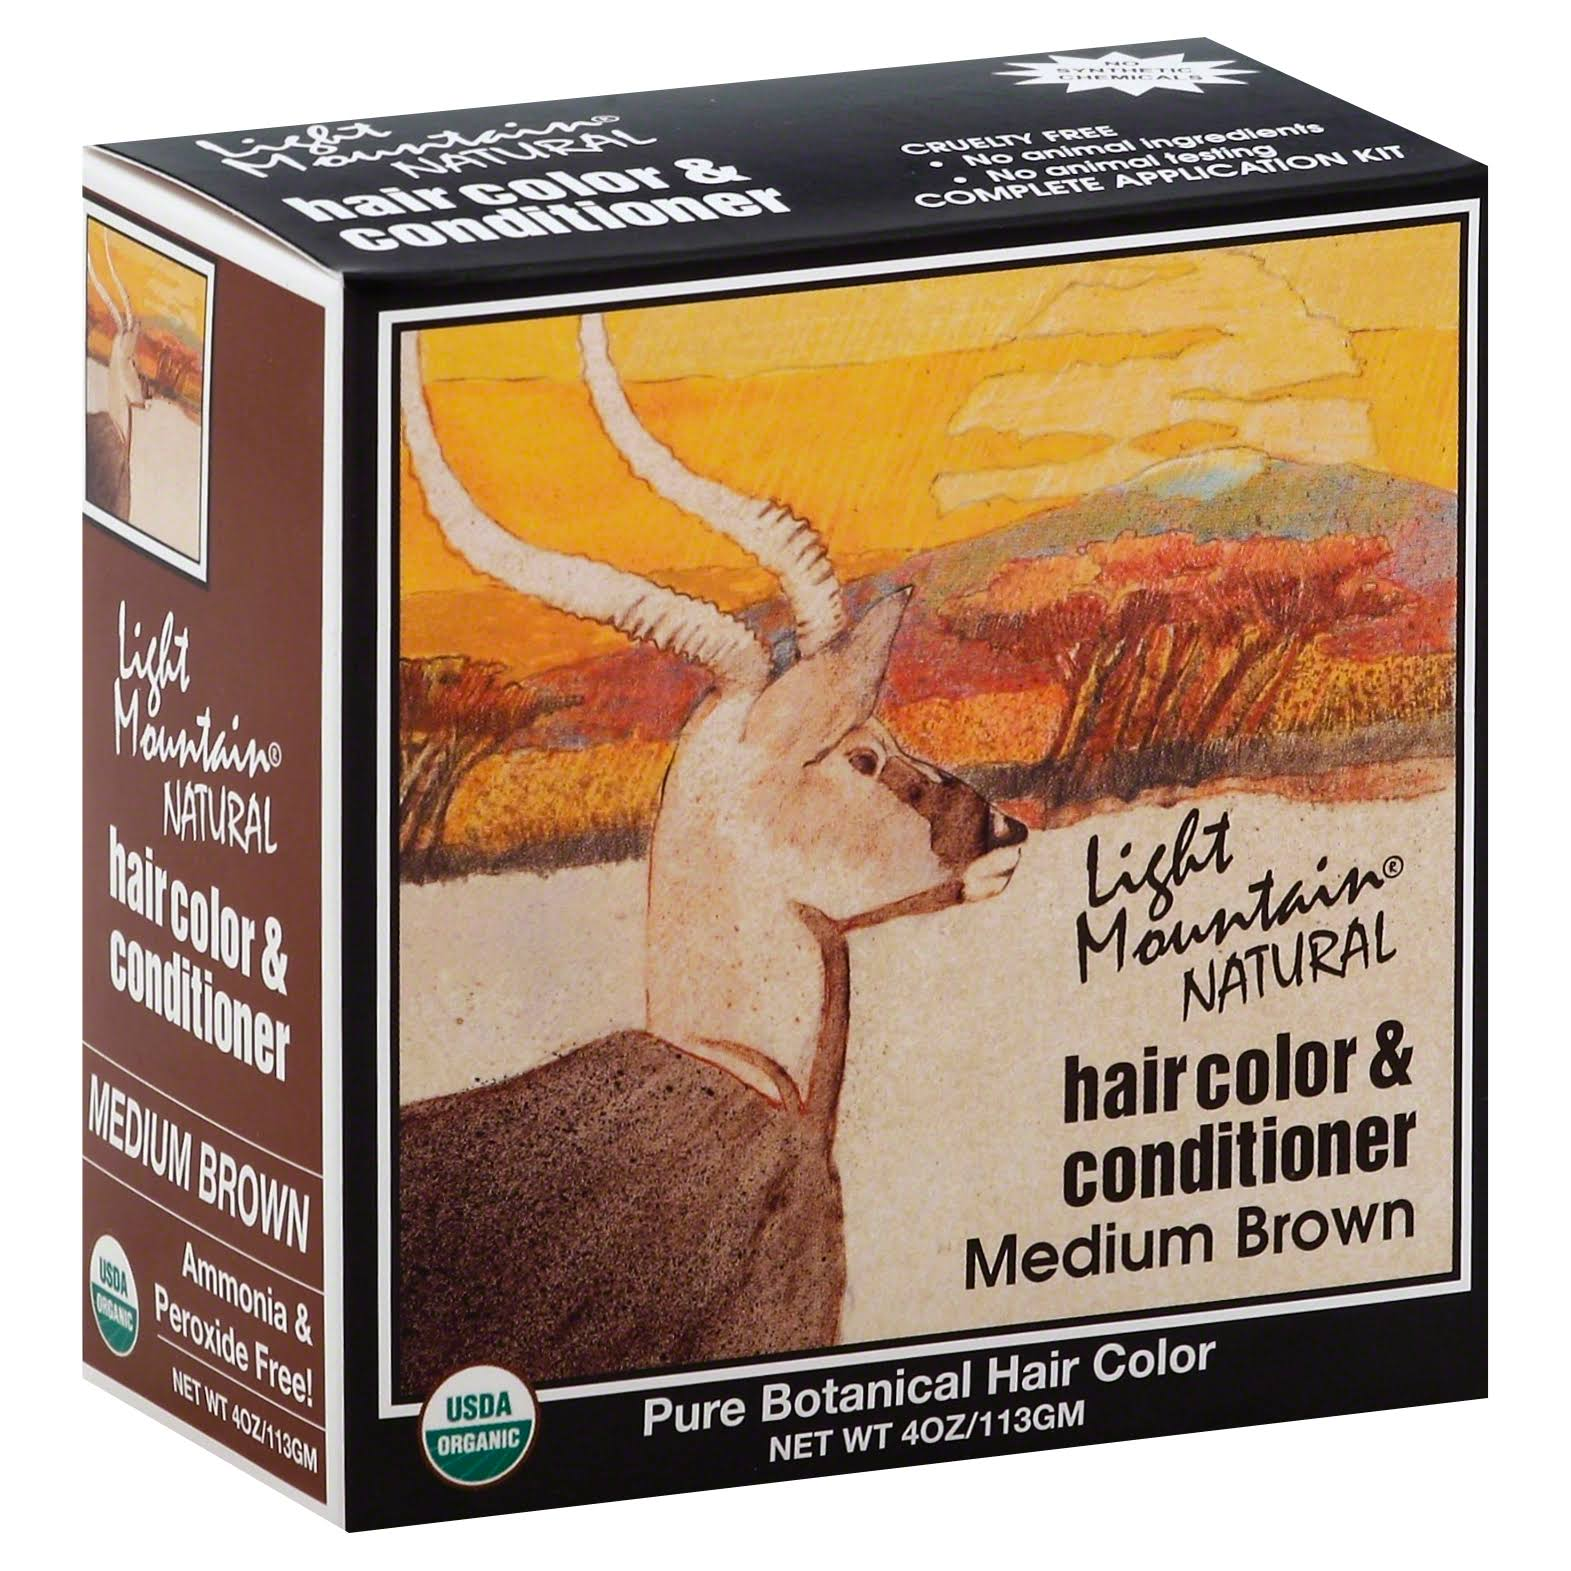 Light Mountain Natural Hair Color & Conditioner - Medium Brown, 113g